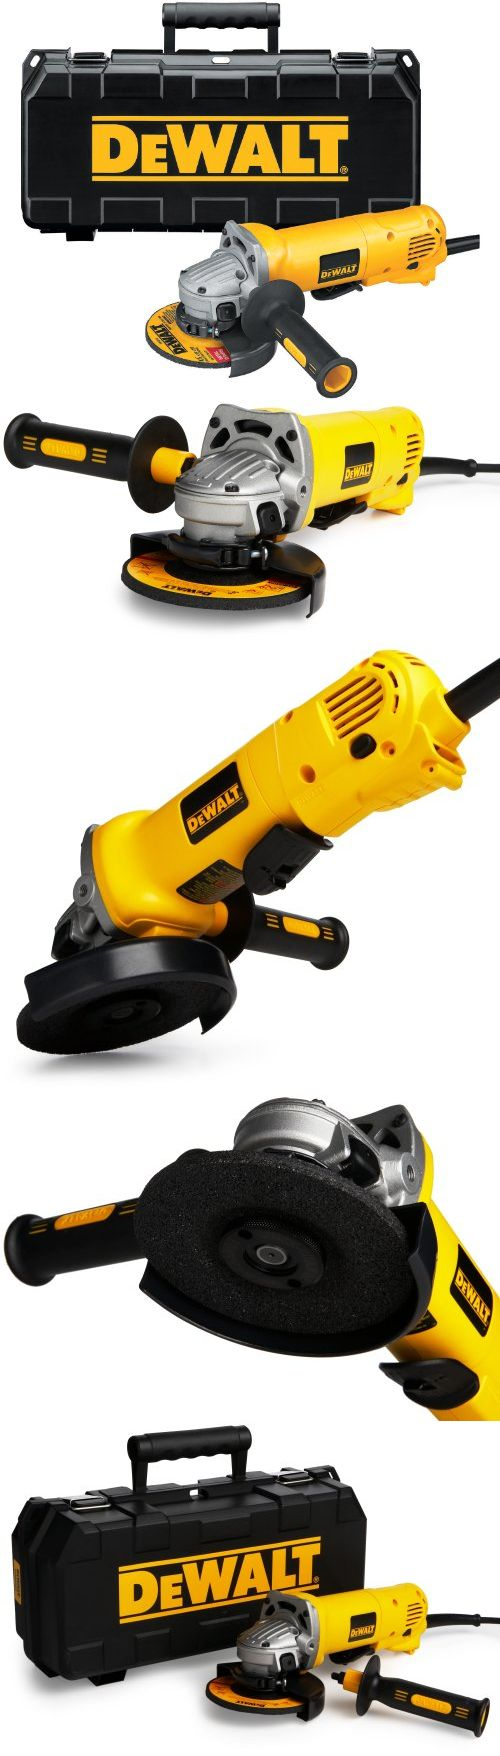 DEWALT D28402K 4-1/2-Inch Small-Angle Grinder Kit - The DEWALT D28402K4-1/2-Inch Small Angle Grinder features a powerful 10 amp motor and an ergonomic body that's easy to handle. This DEWALT also features an exclusive Dust Ejection System and epoxy-coa... - Angle Grinders - Tools & Hardware - $89.00